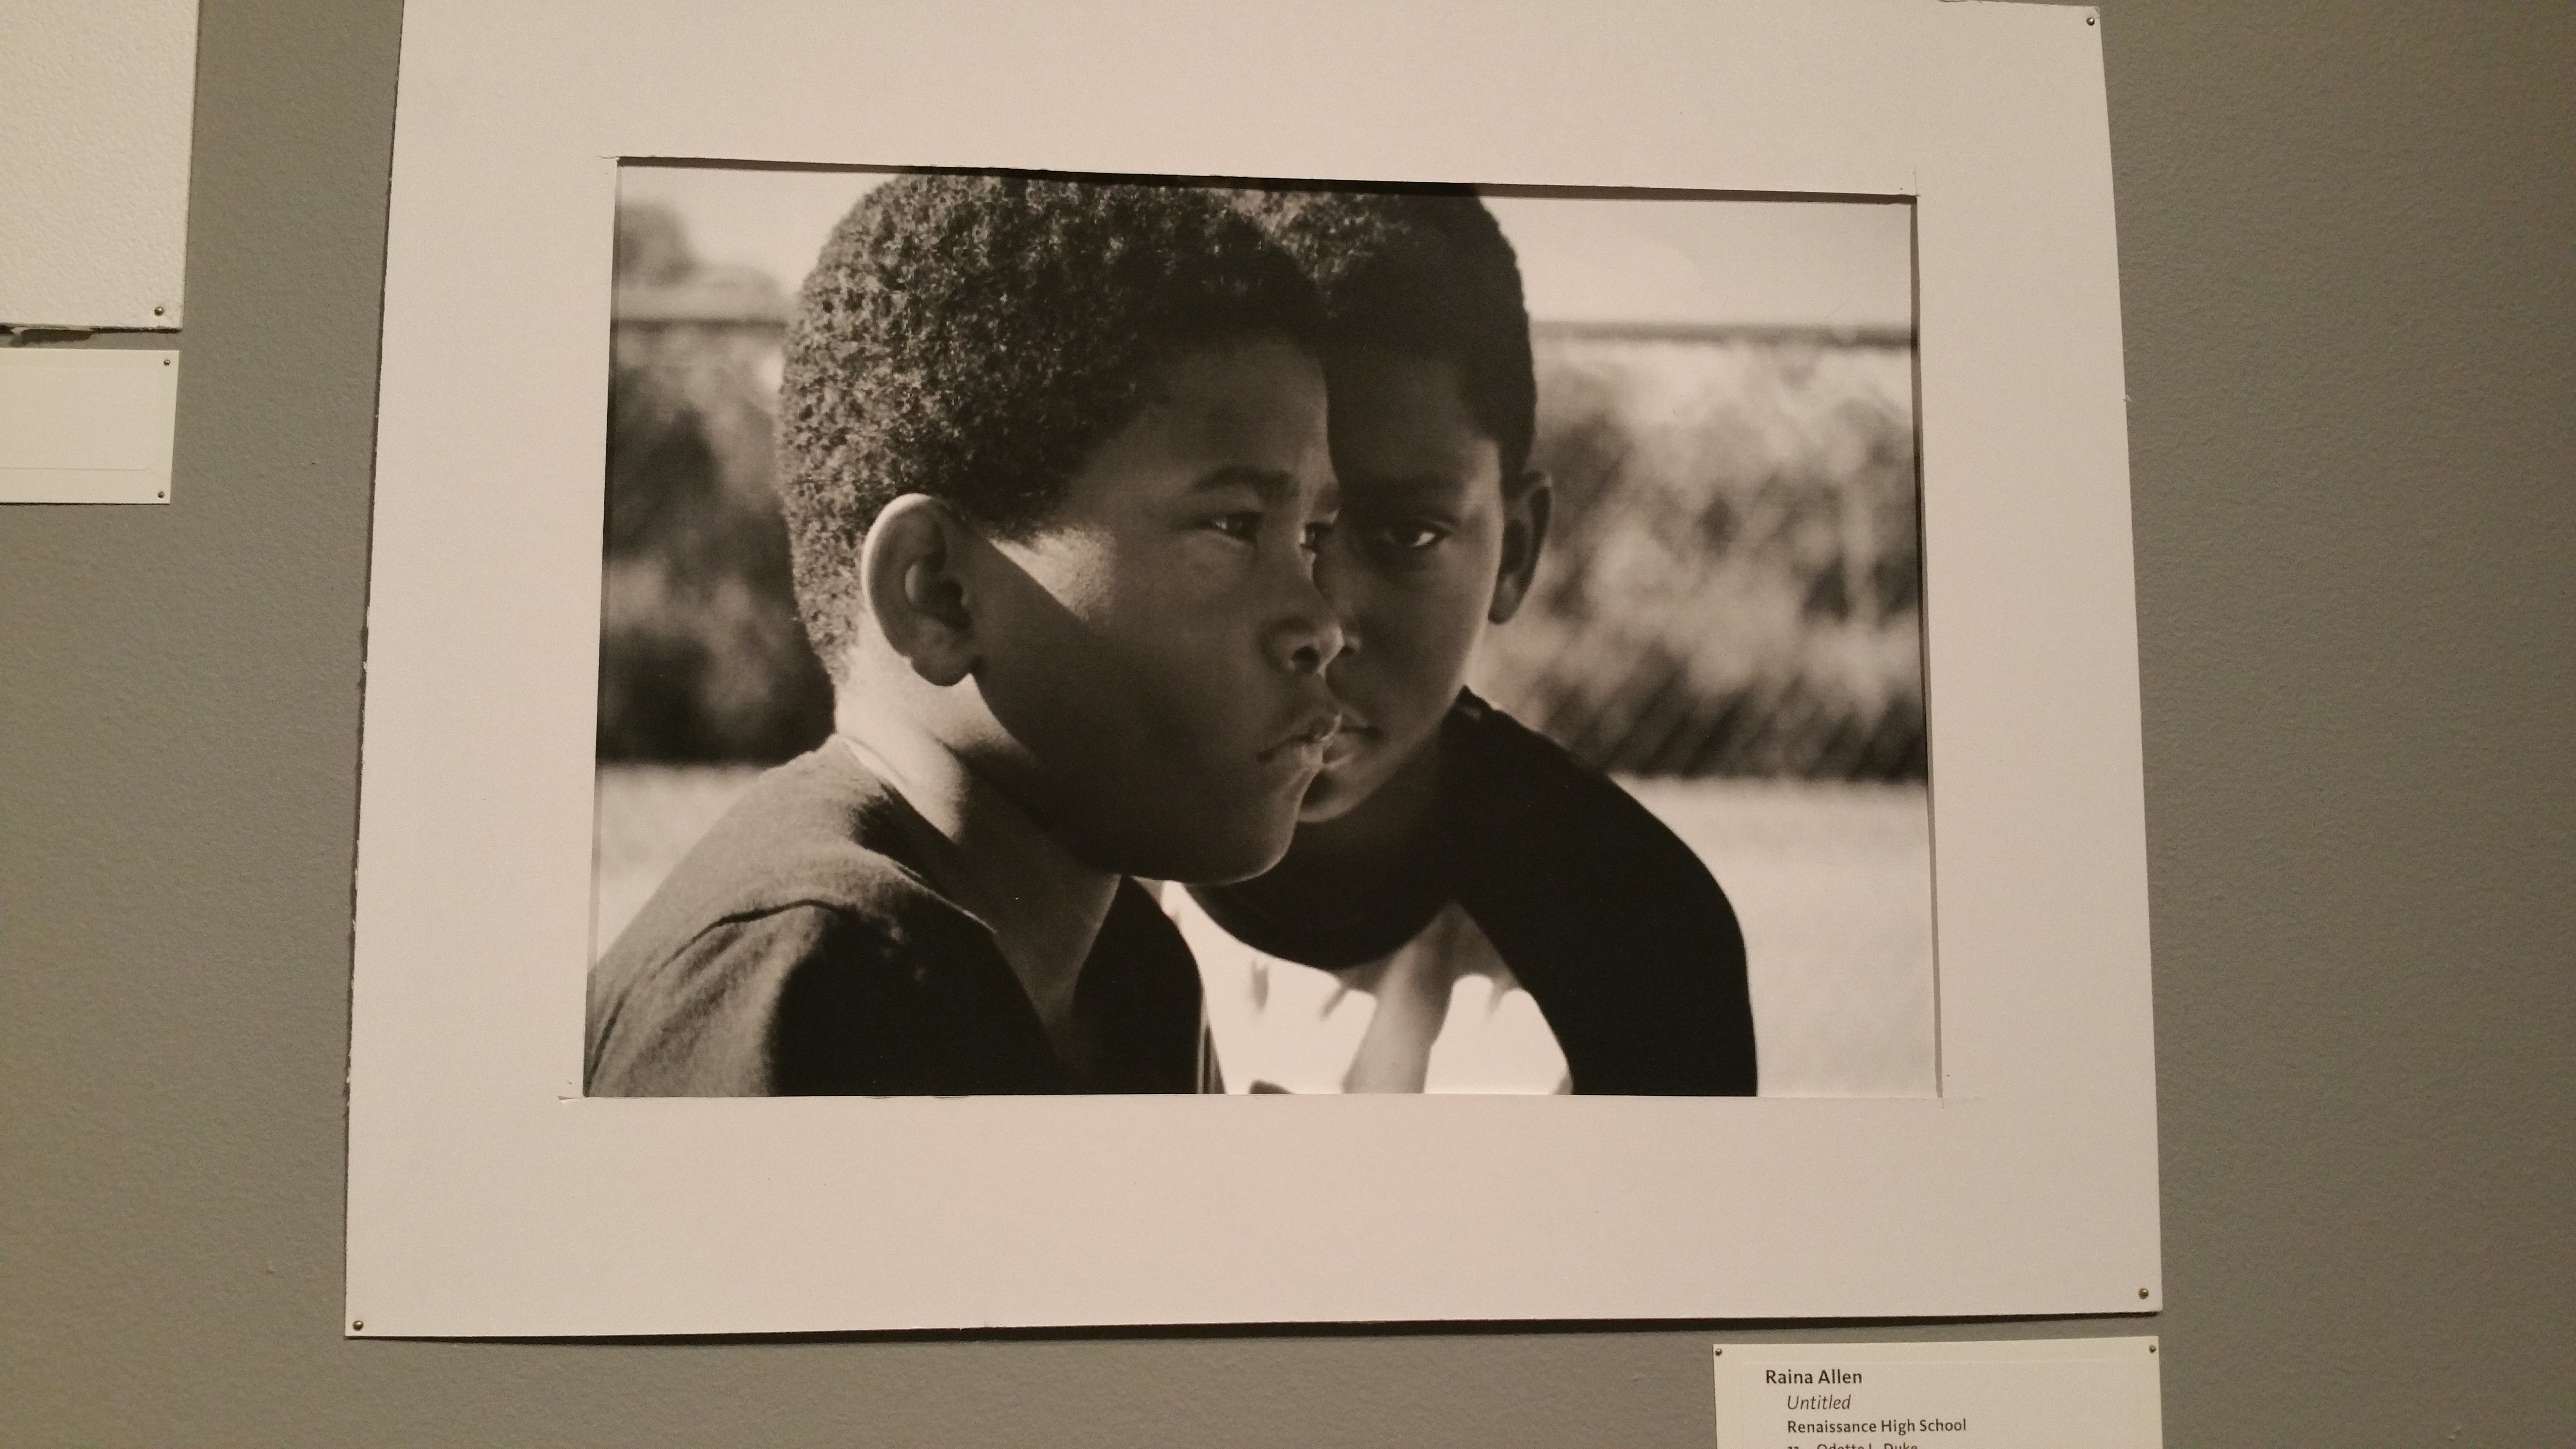 Black and white close up photo of two young African American boys with short hair, one is facing the camera with half of his face covered by the other boy who is facing sideways.